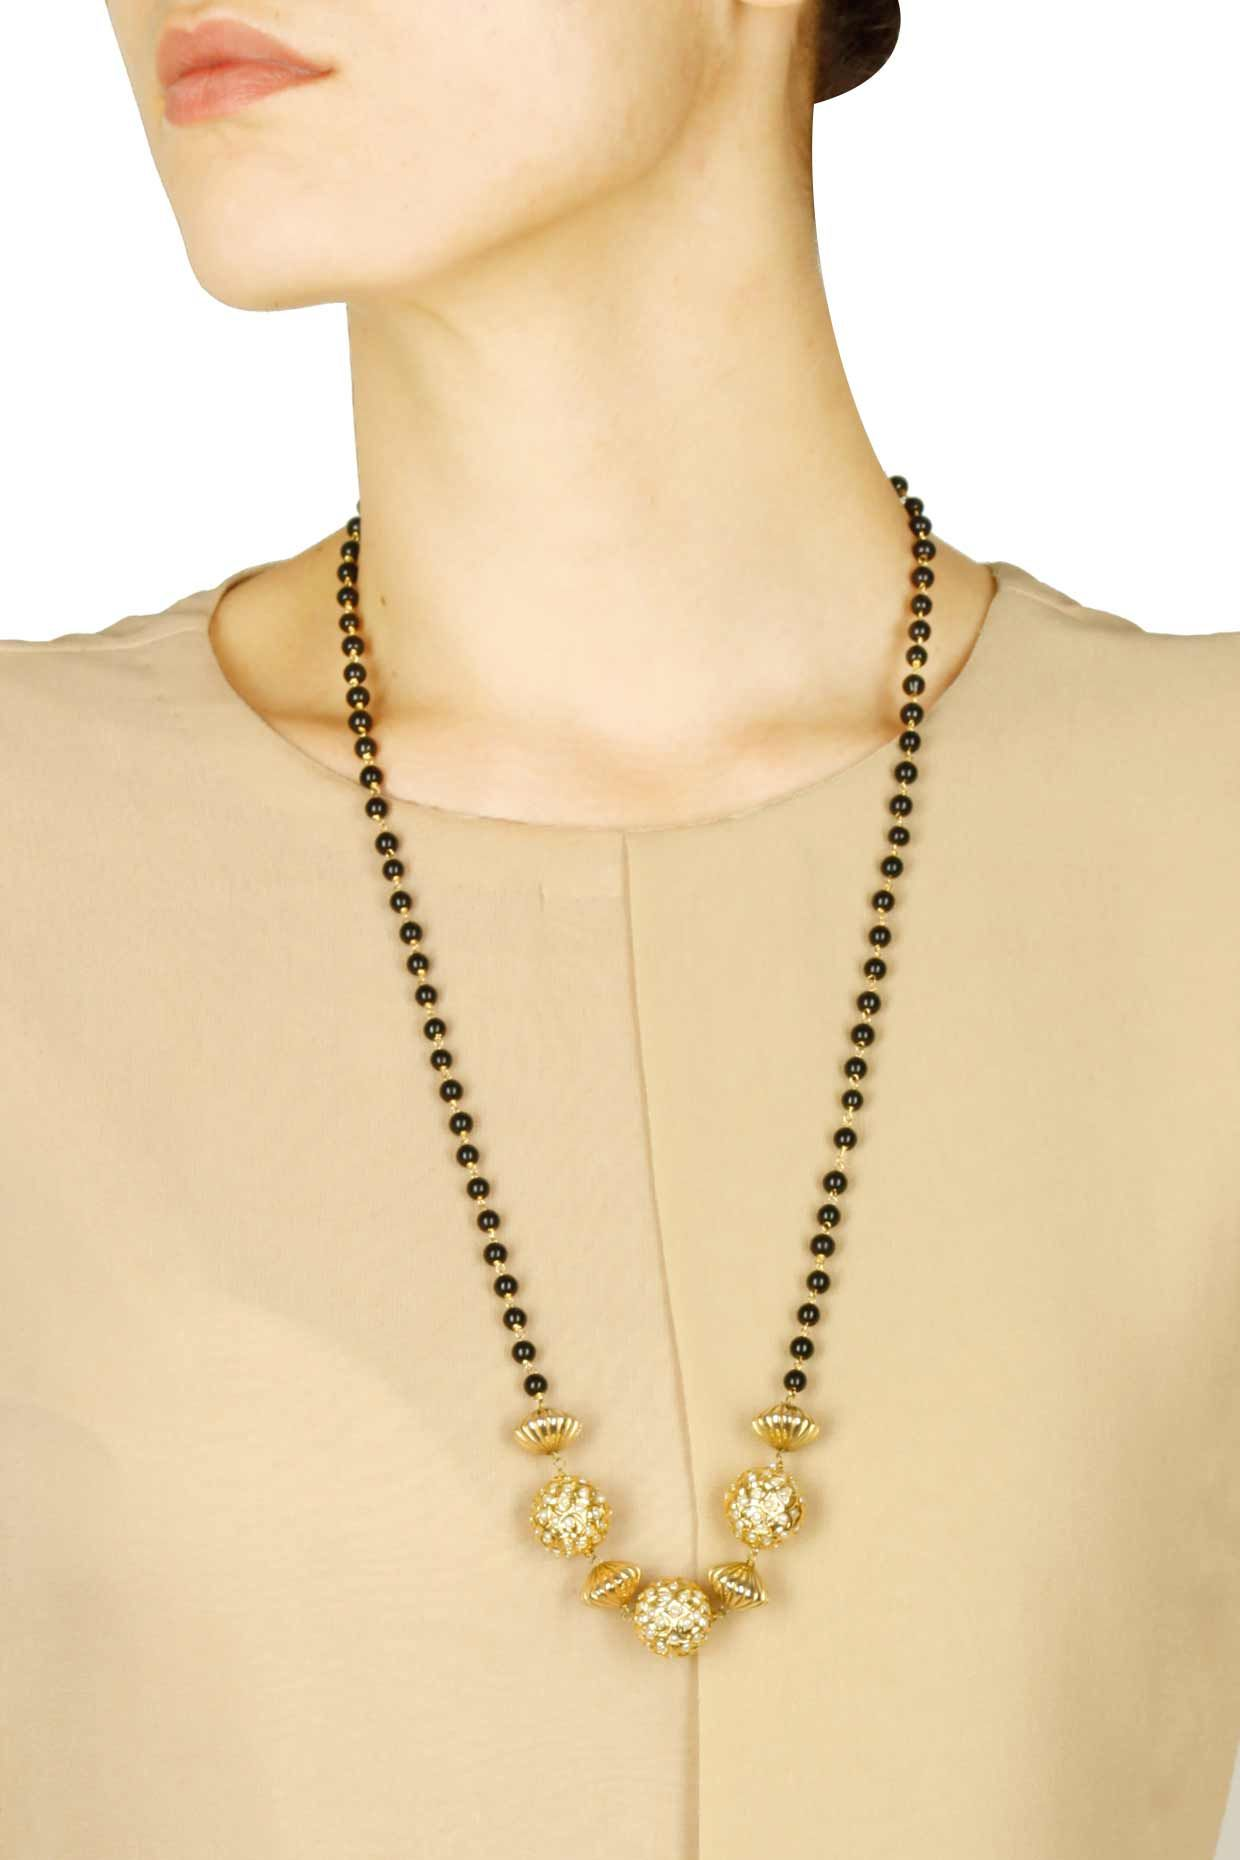 22 carat gold floral designer pendant with multiple beads chain and - Art Karat Presents Gold Finish Pearl Carved Ball Black Beads String Necklace Available Only At Pernia S Pop Up Shop